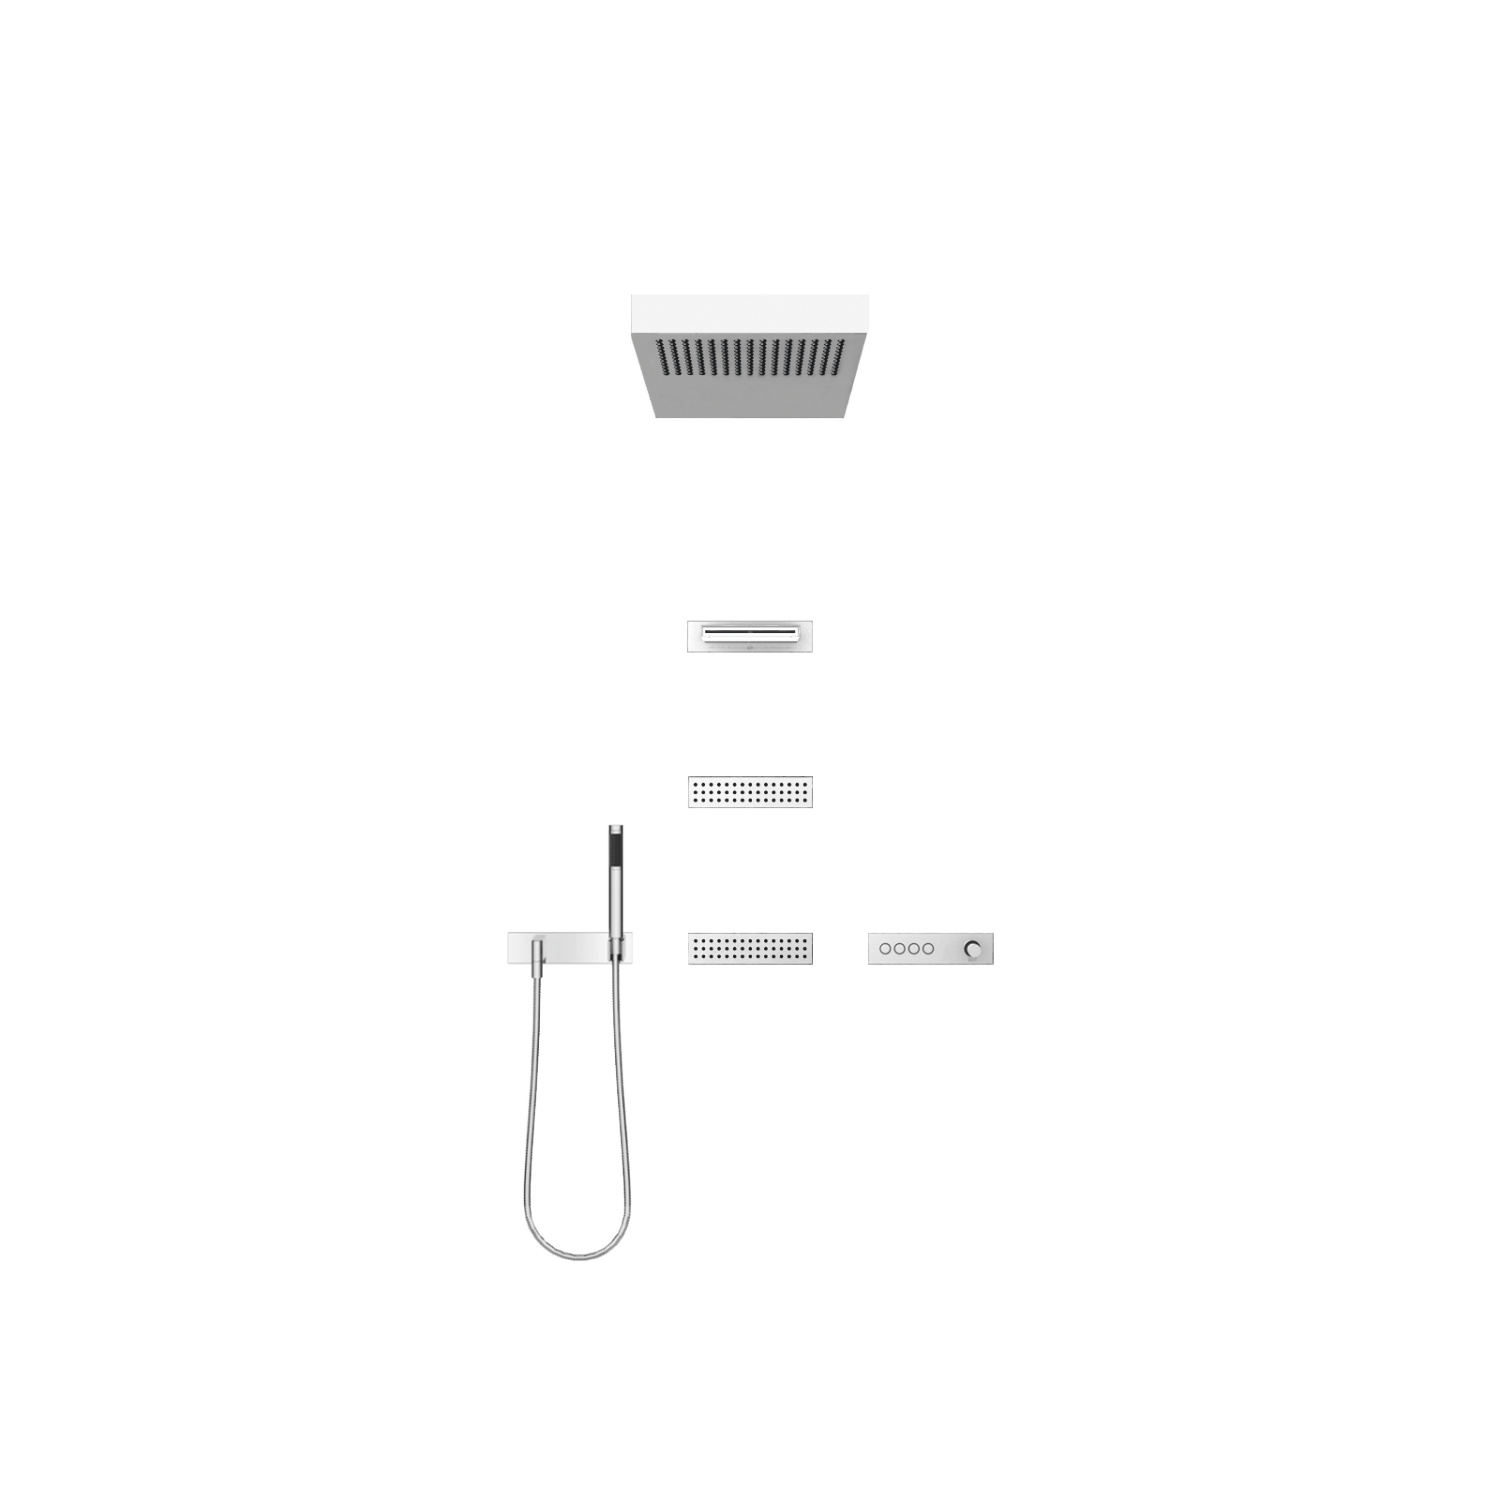 VERTICAL SHOWERᴬᵀᵀ Massage shower - Polished stainless steel / polished chrome